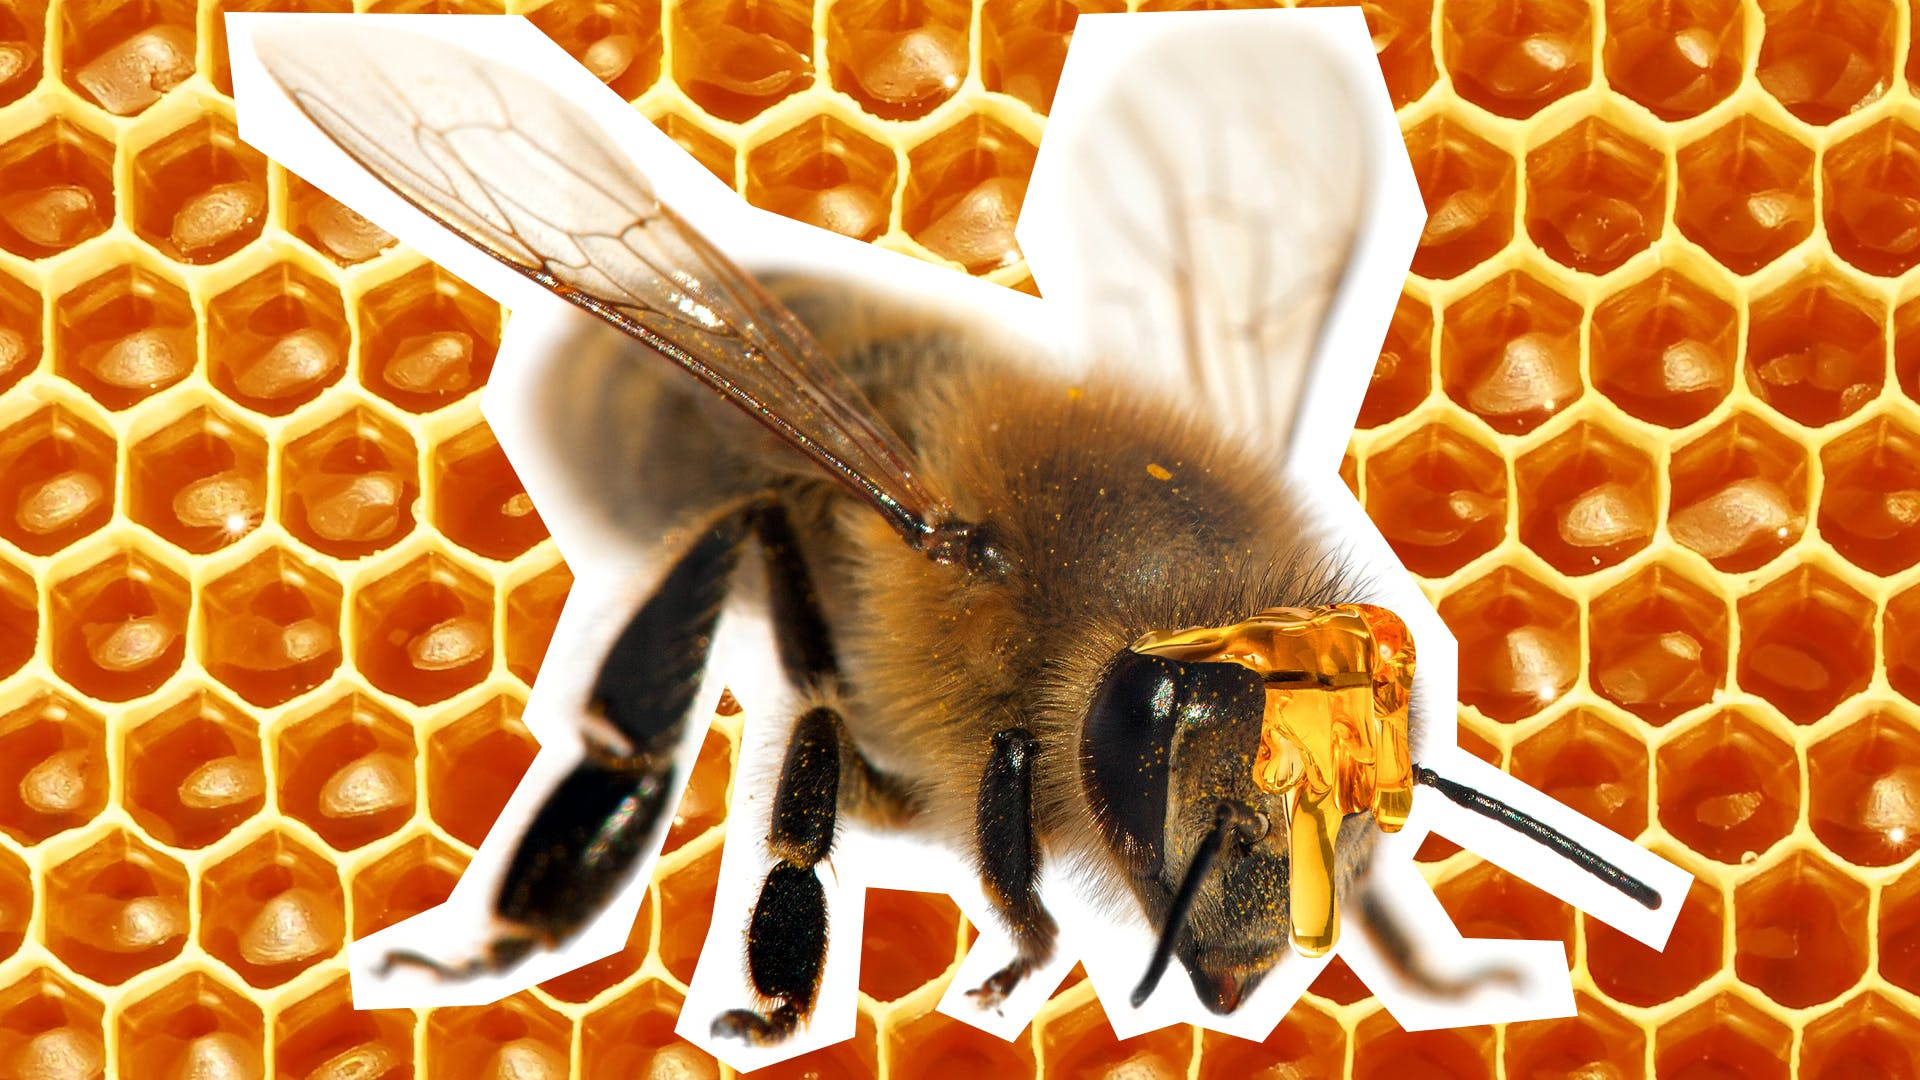 A bee on a honeycomb background. Why do bees have sticky hair? | Why was the bees hair sticky?